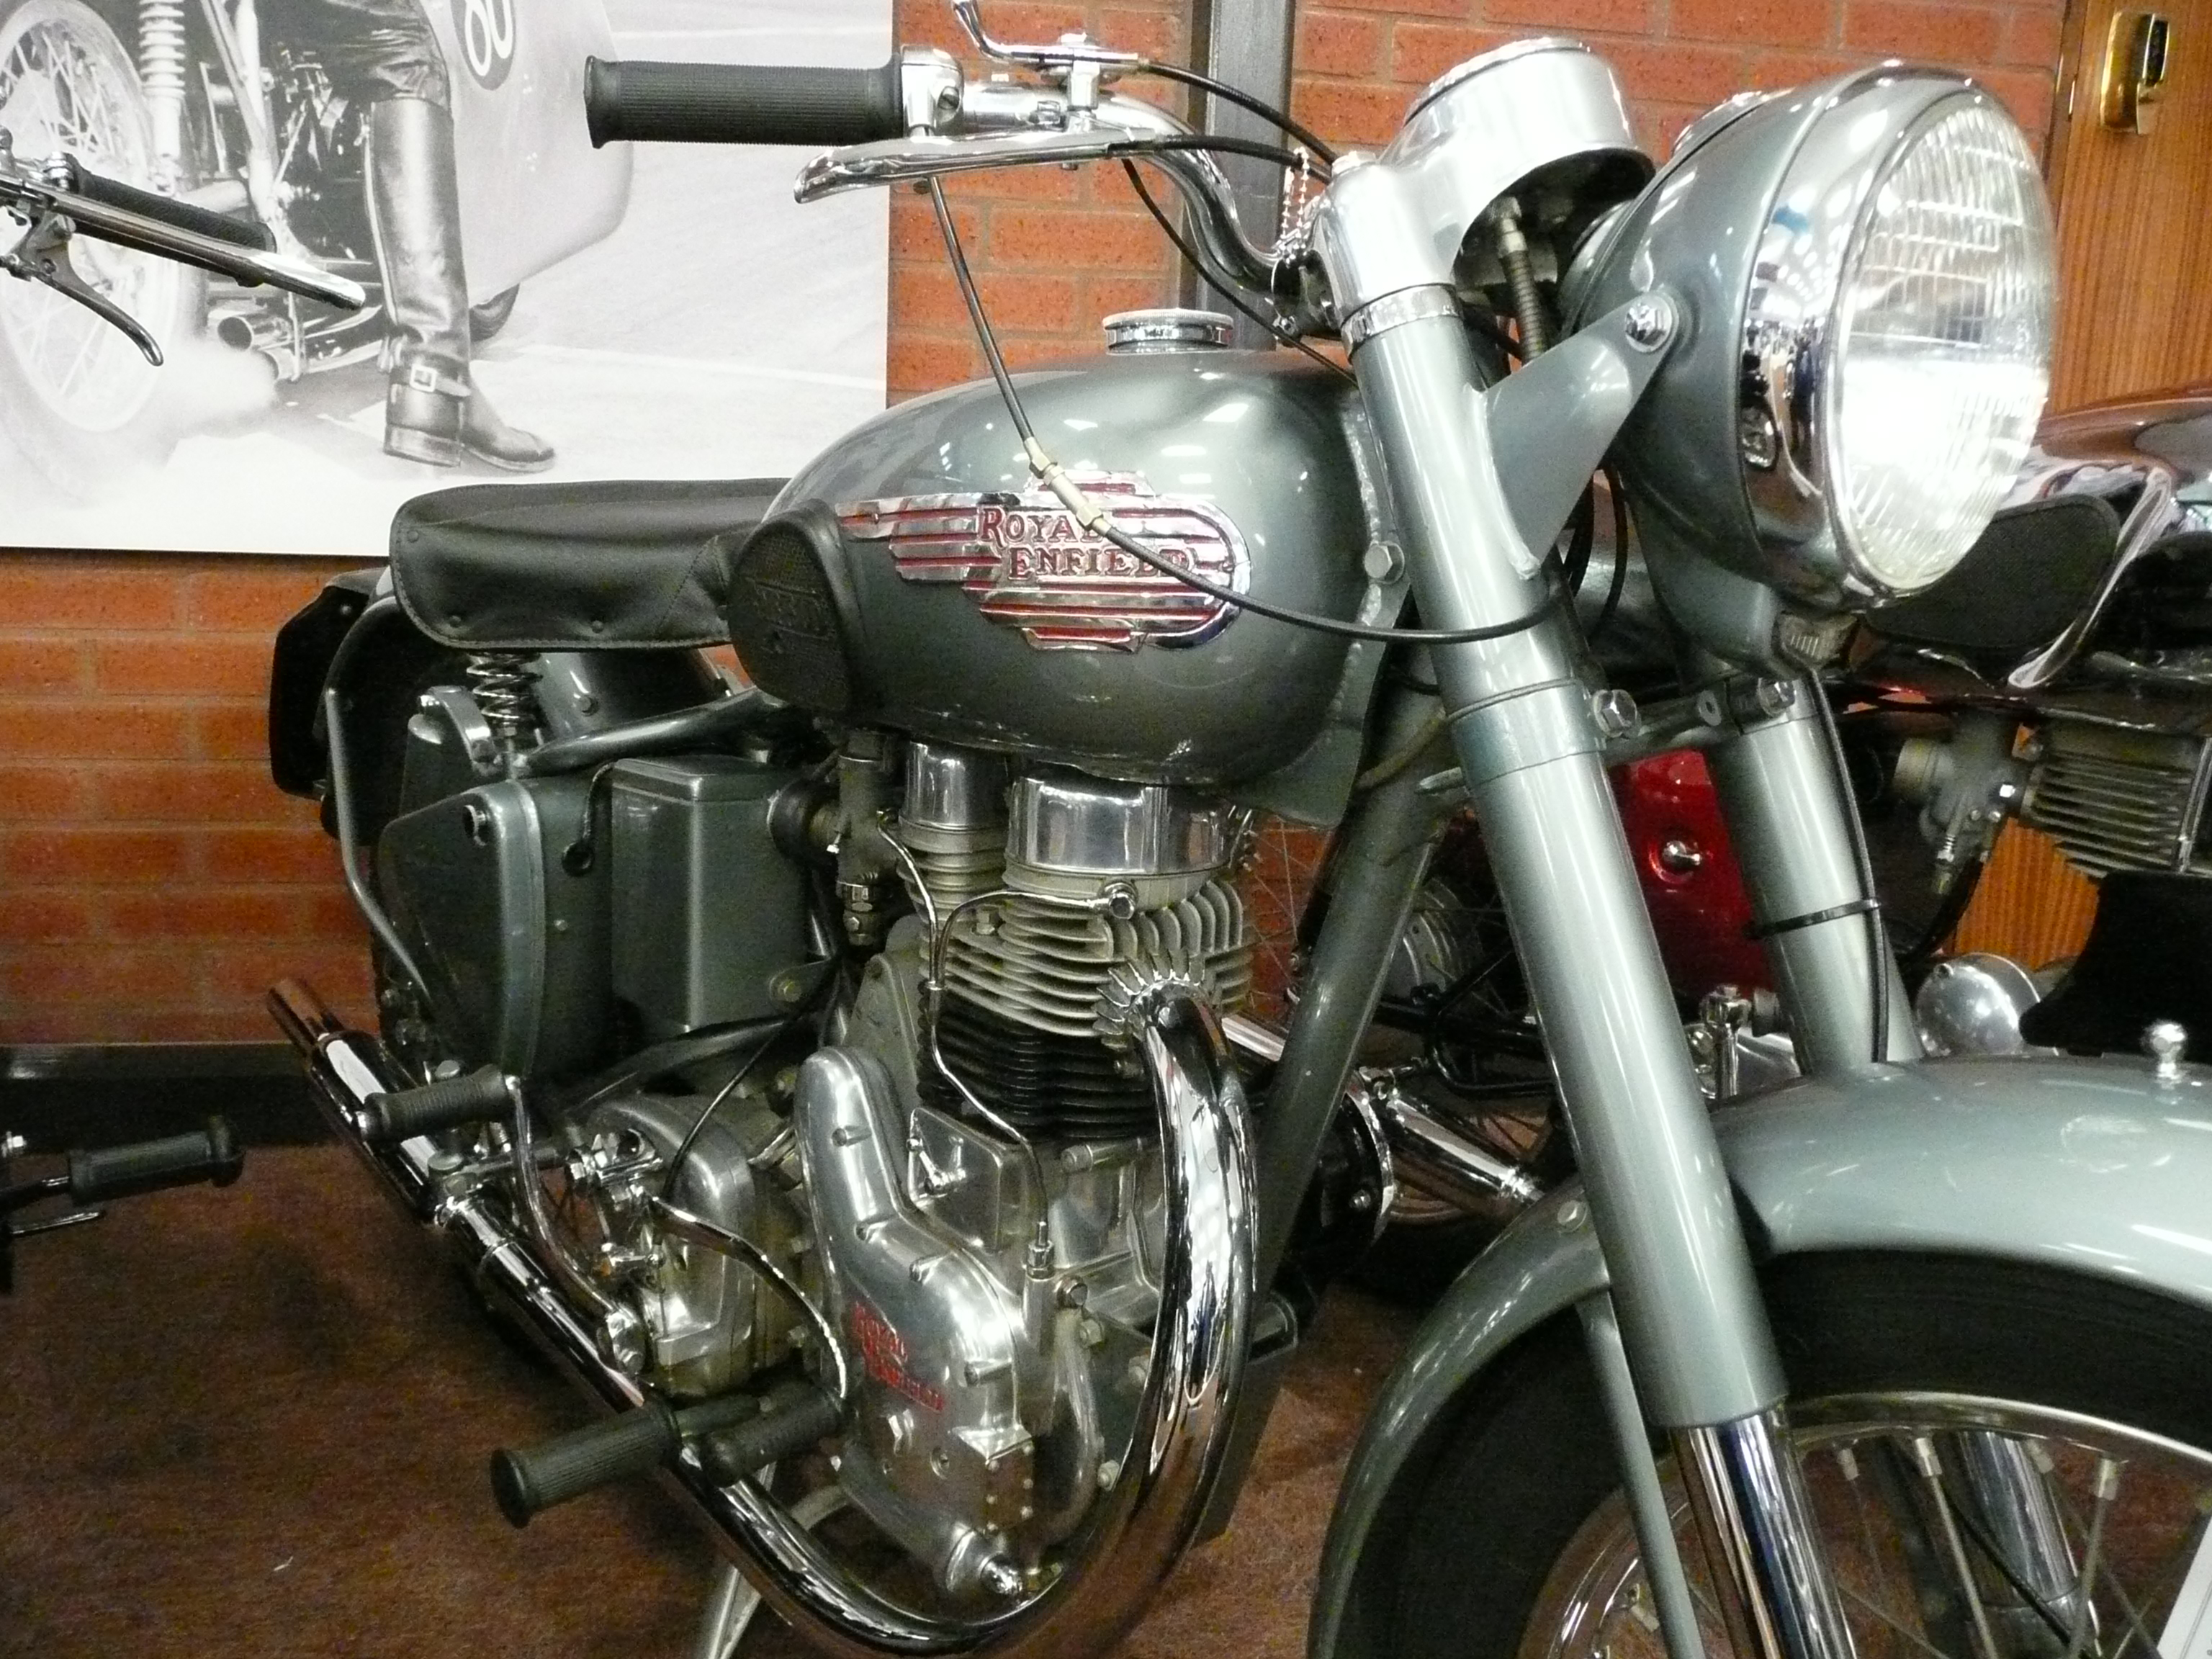 Royal Enfield Bullet 500 Army 2001 images #126036